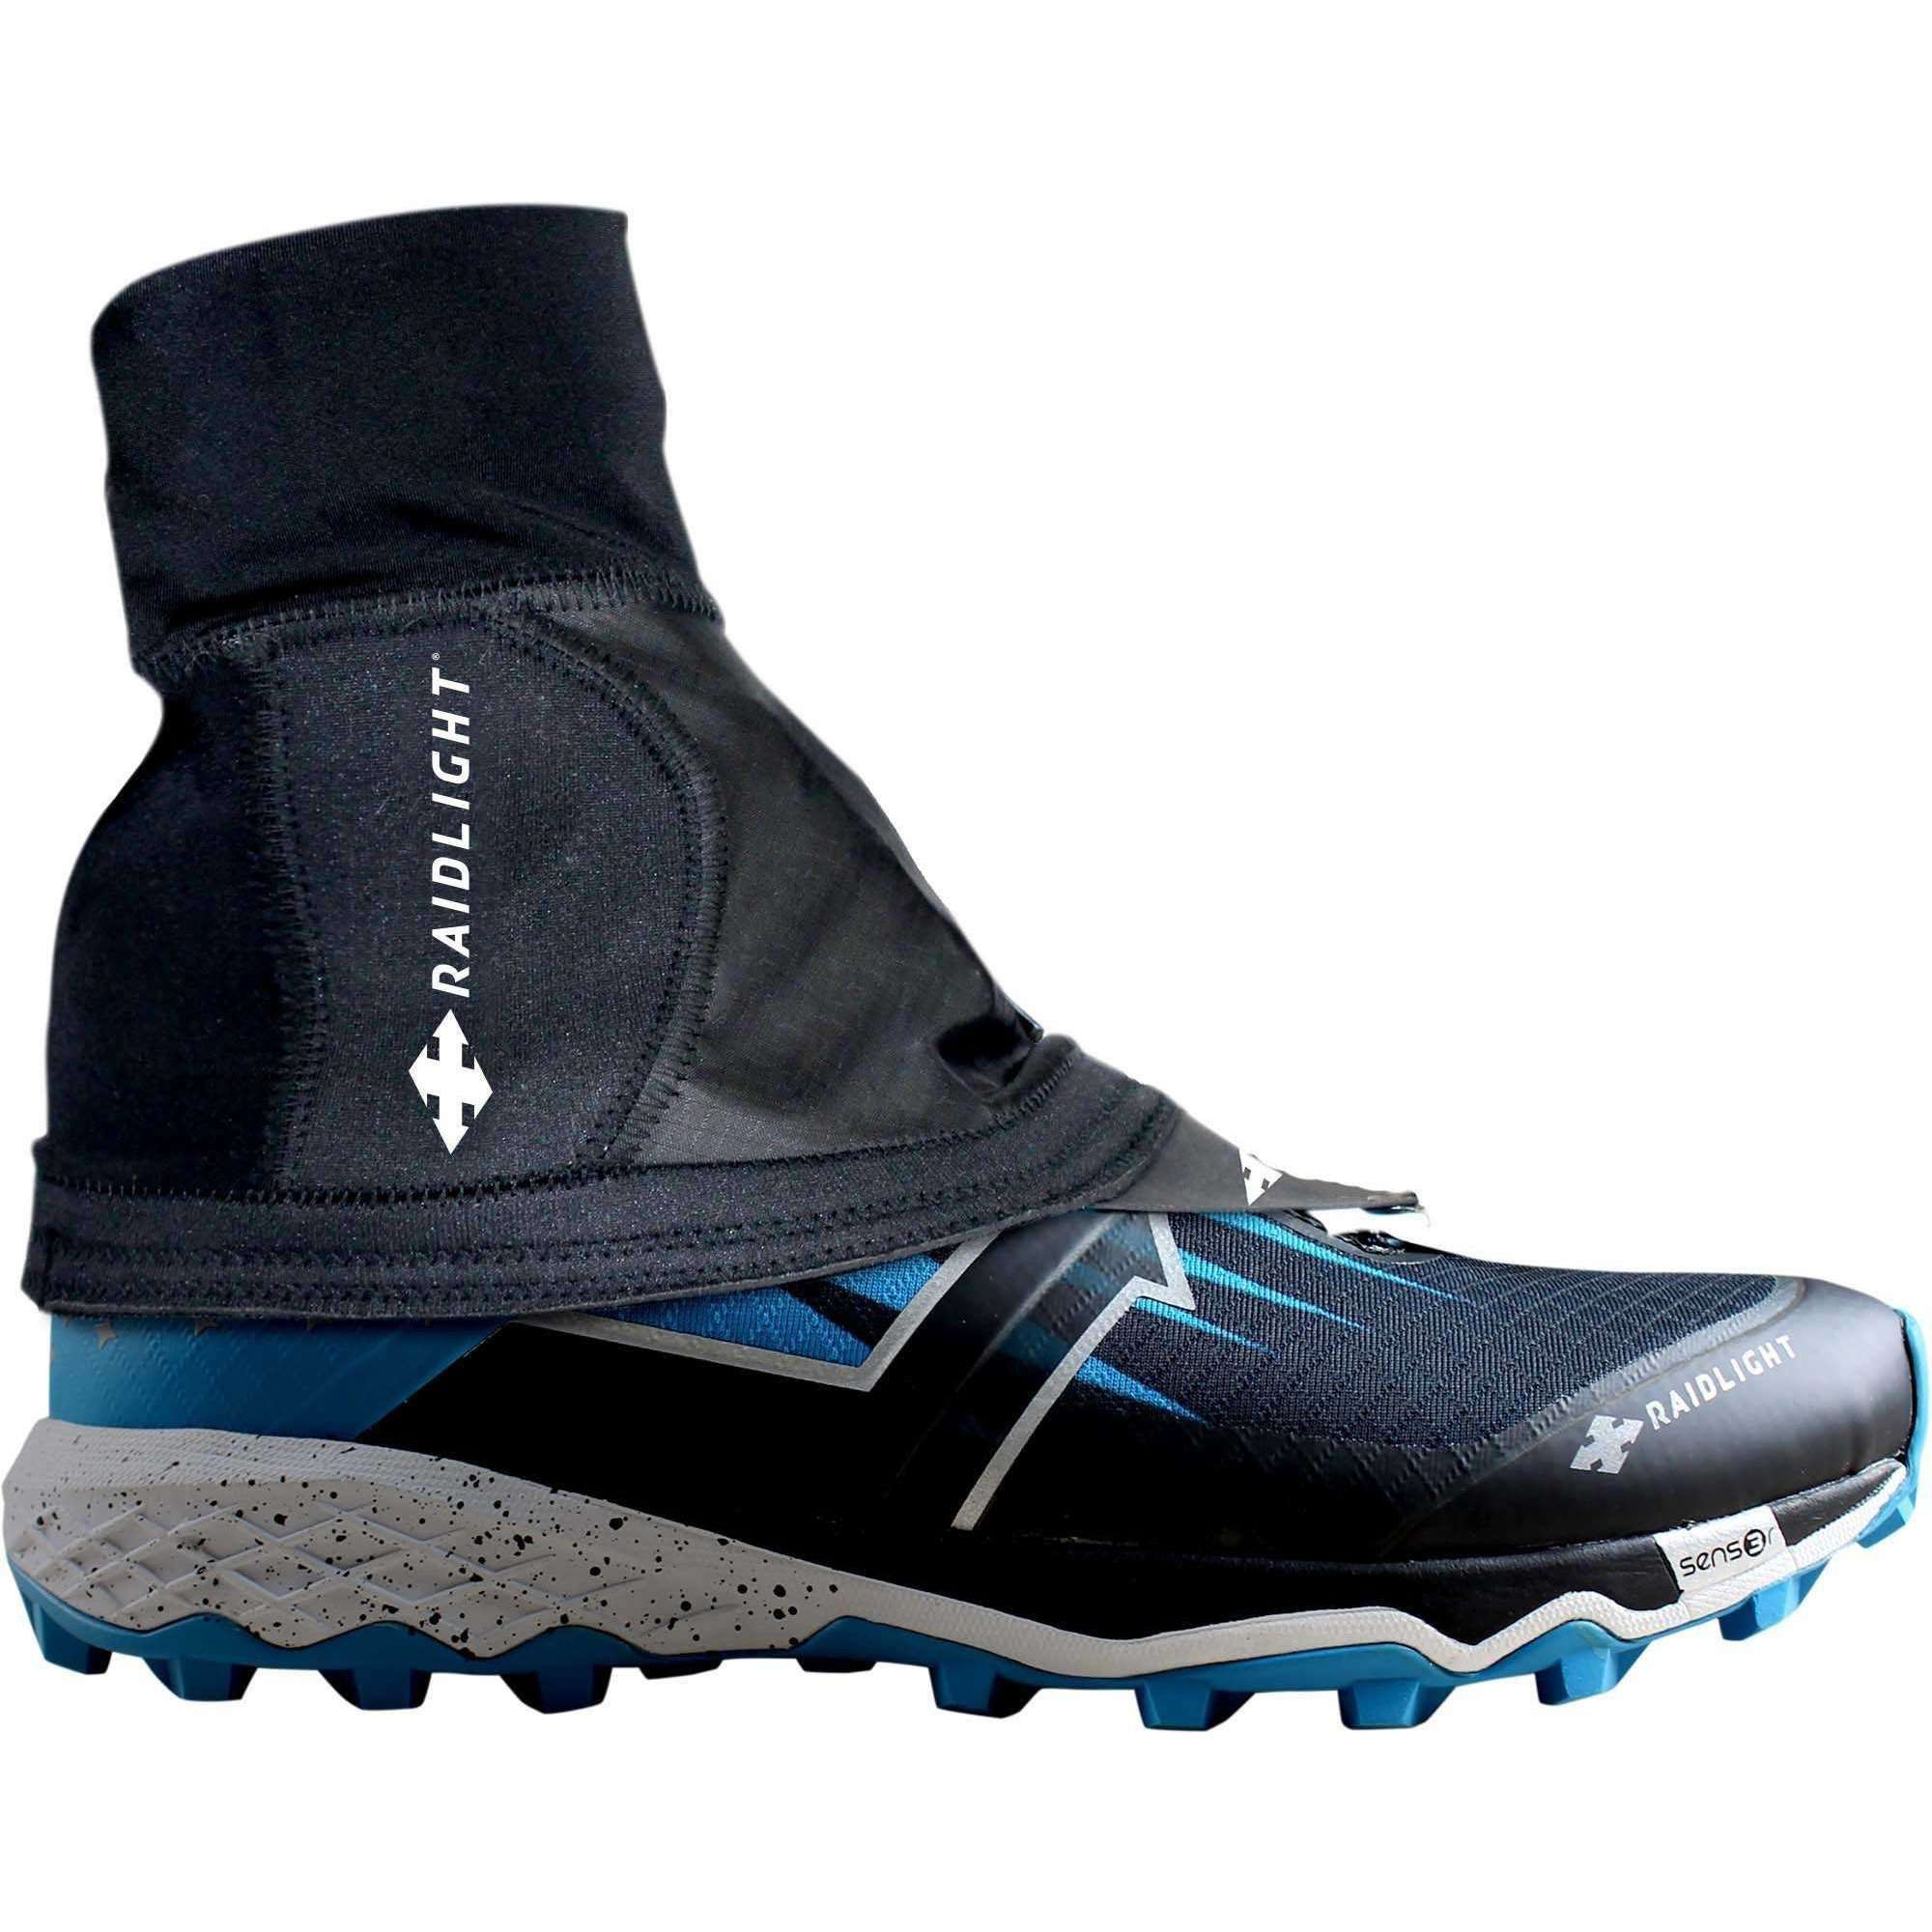 Hyper Trail Gaiters Gaiters- RaidLight